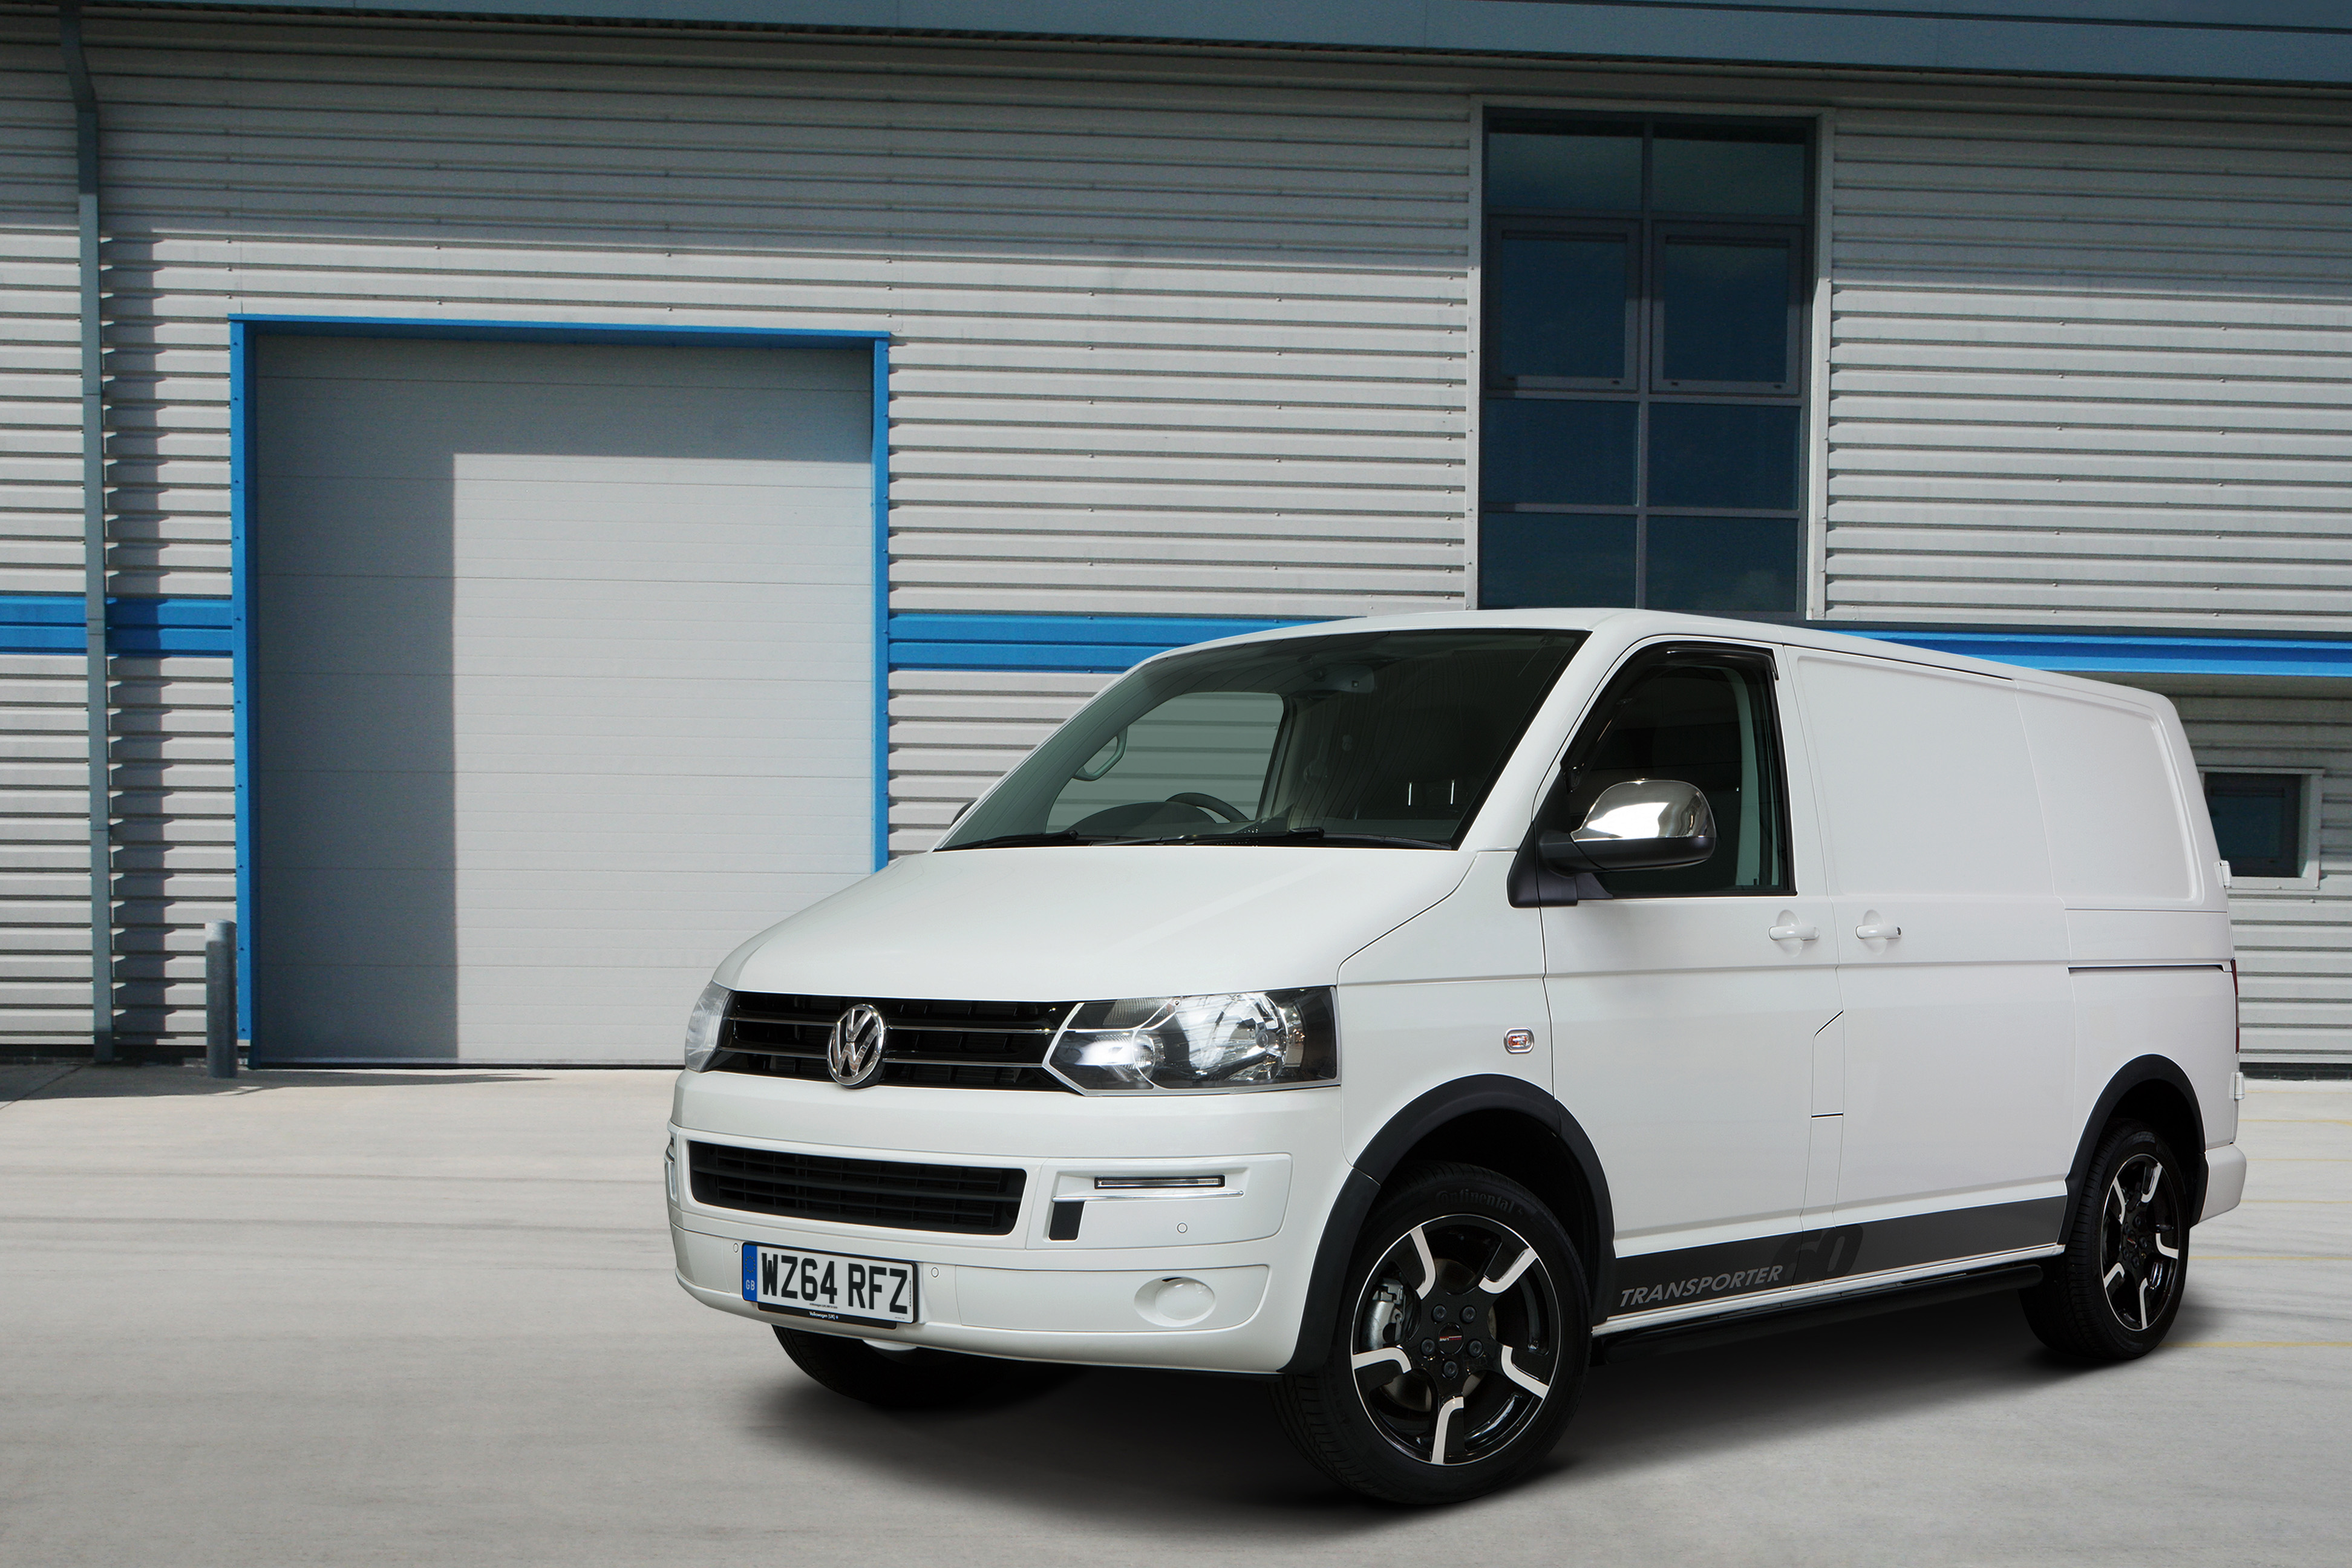 vw transporter gets 60th anniversary pack. Black Bedroom Furniture Sets. Home Design Ideas